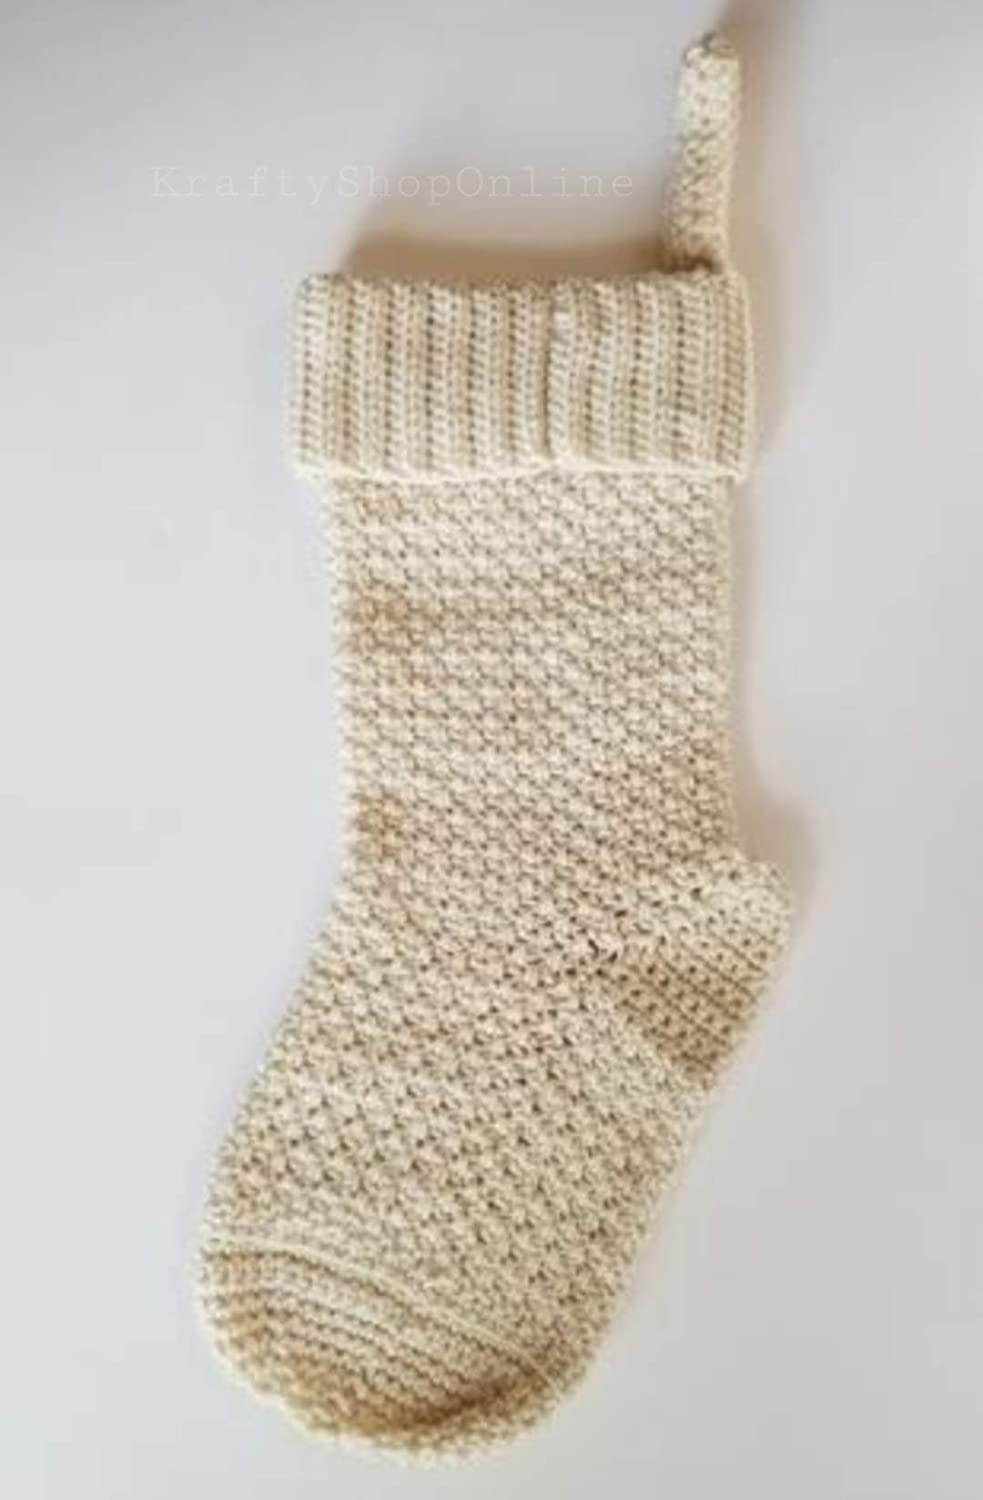 Handmade Christmas Stocking NEW before selling - Opening large release sale Crocheted Color Choices